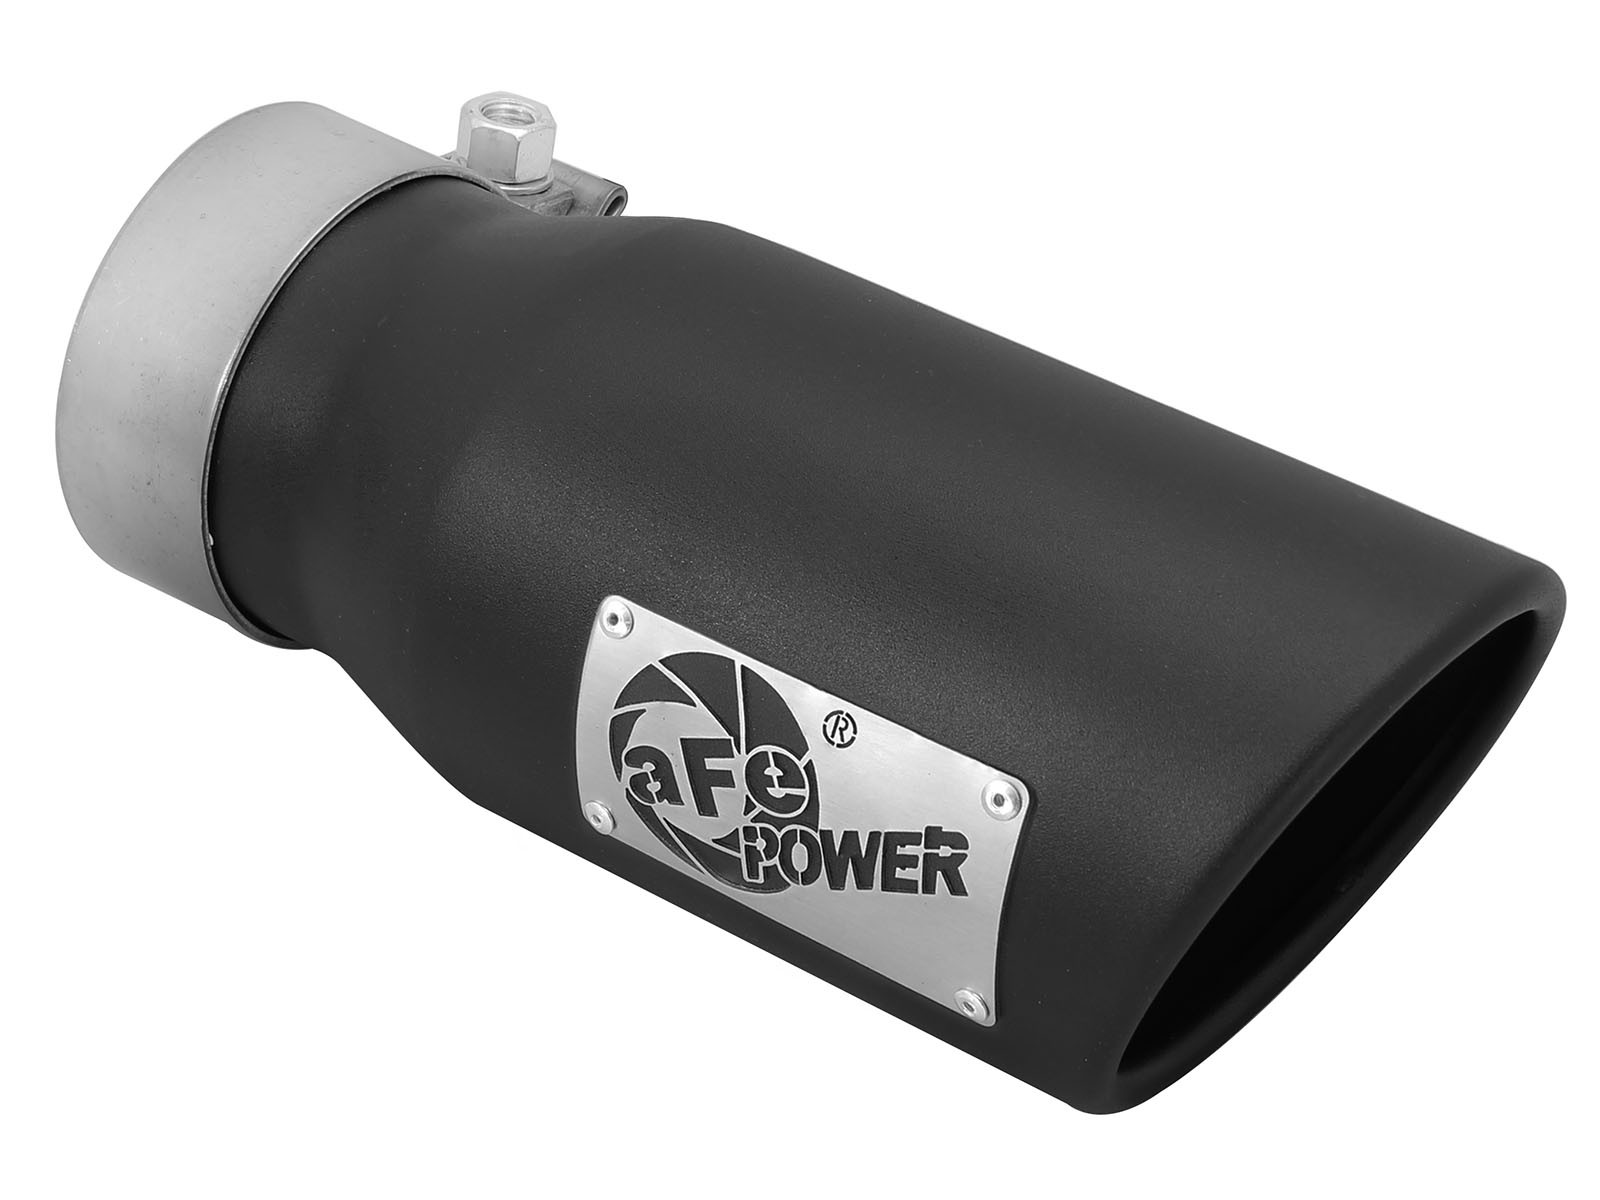 """aFe POWER 49T30401-B09 MACH Force-Xp 3"""" 304 Stainless Steel Exhaust Tip"""